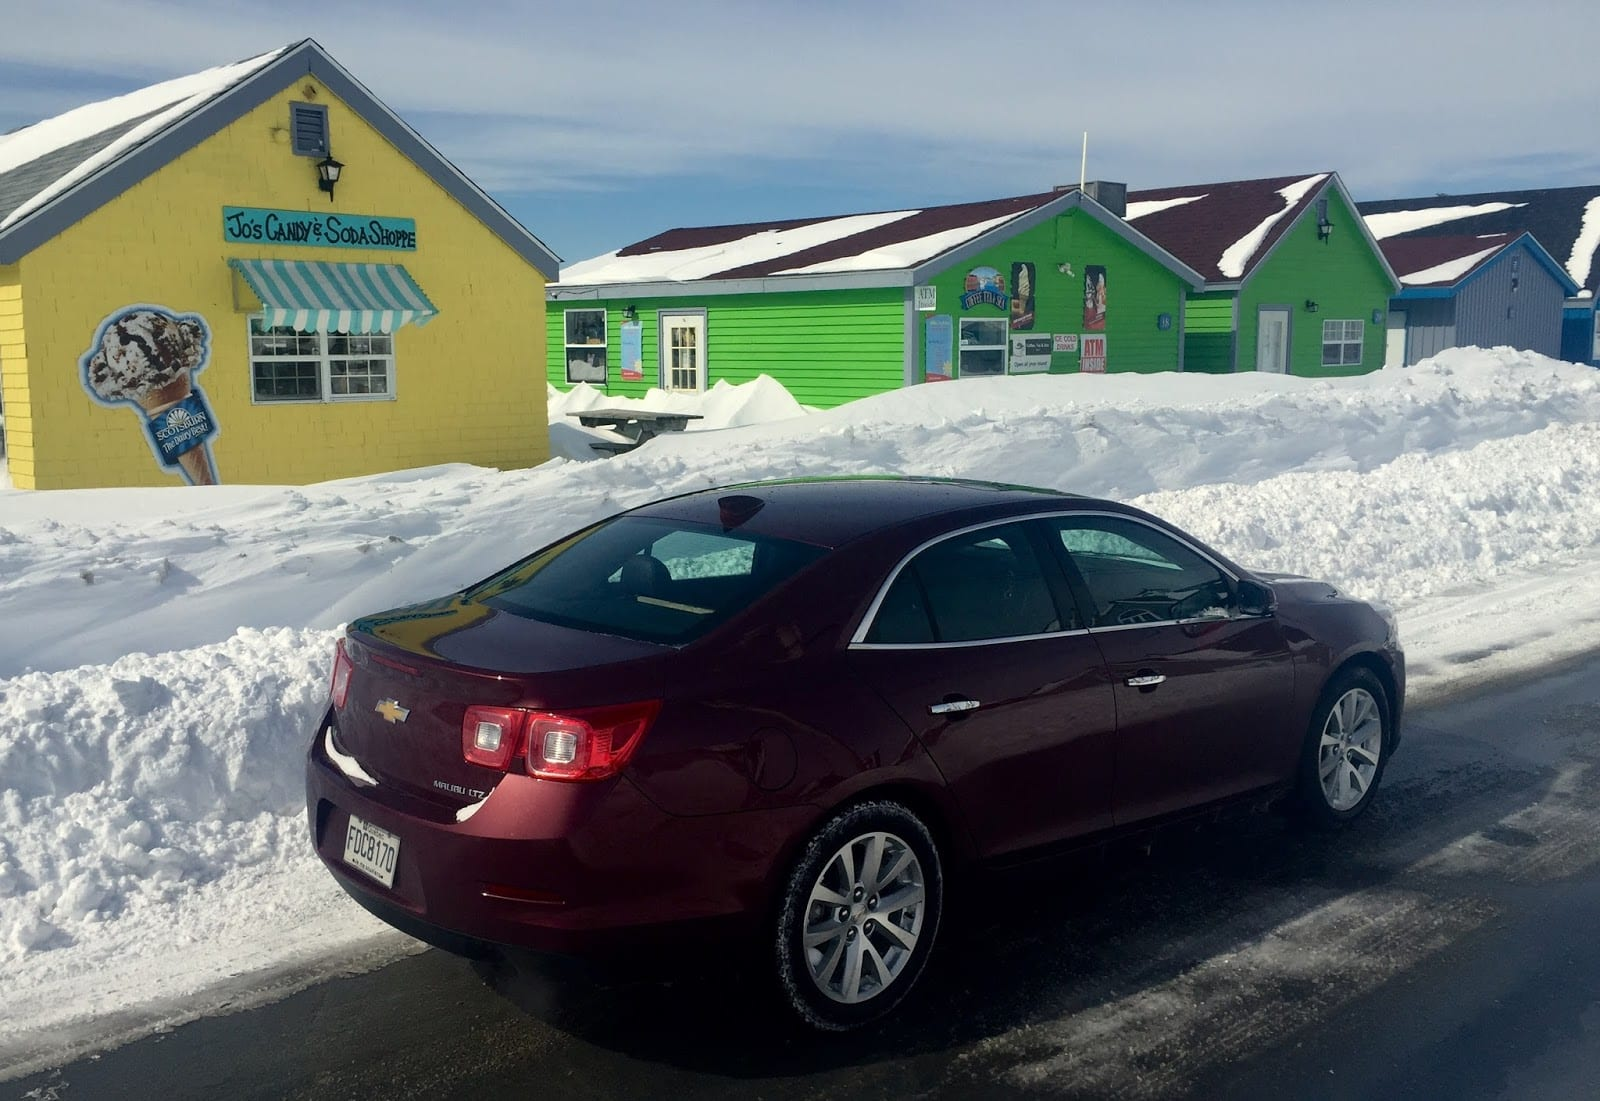 Malibu 2014 chevrolet malibu ltz : 2015 Chevrolet Malibu LTZ Review - Wait For It... Wait For It... -